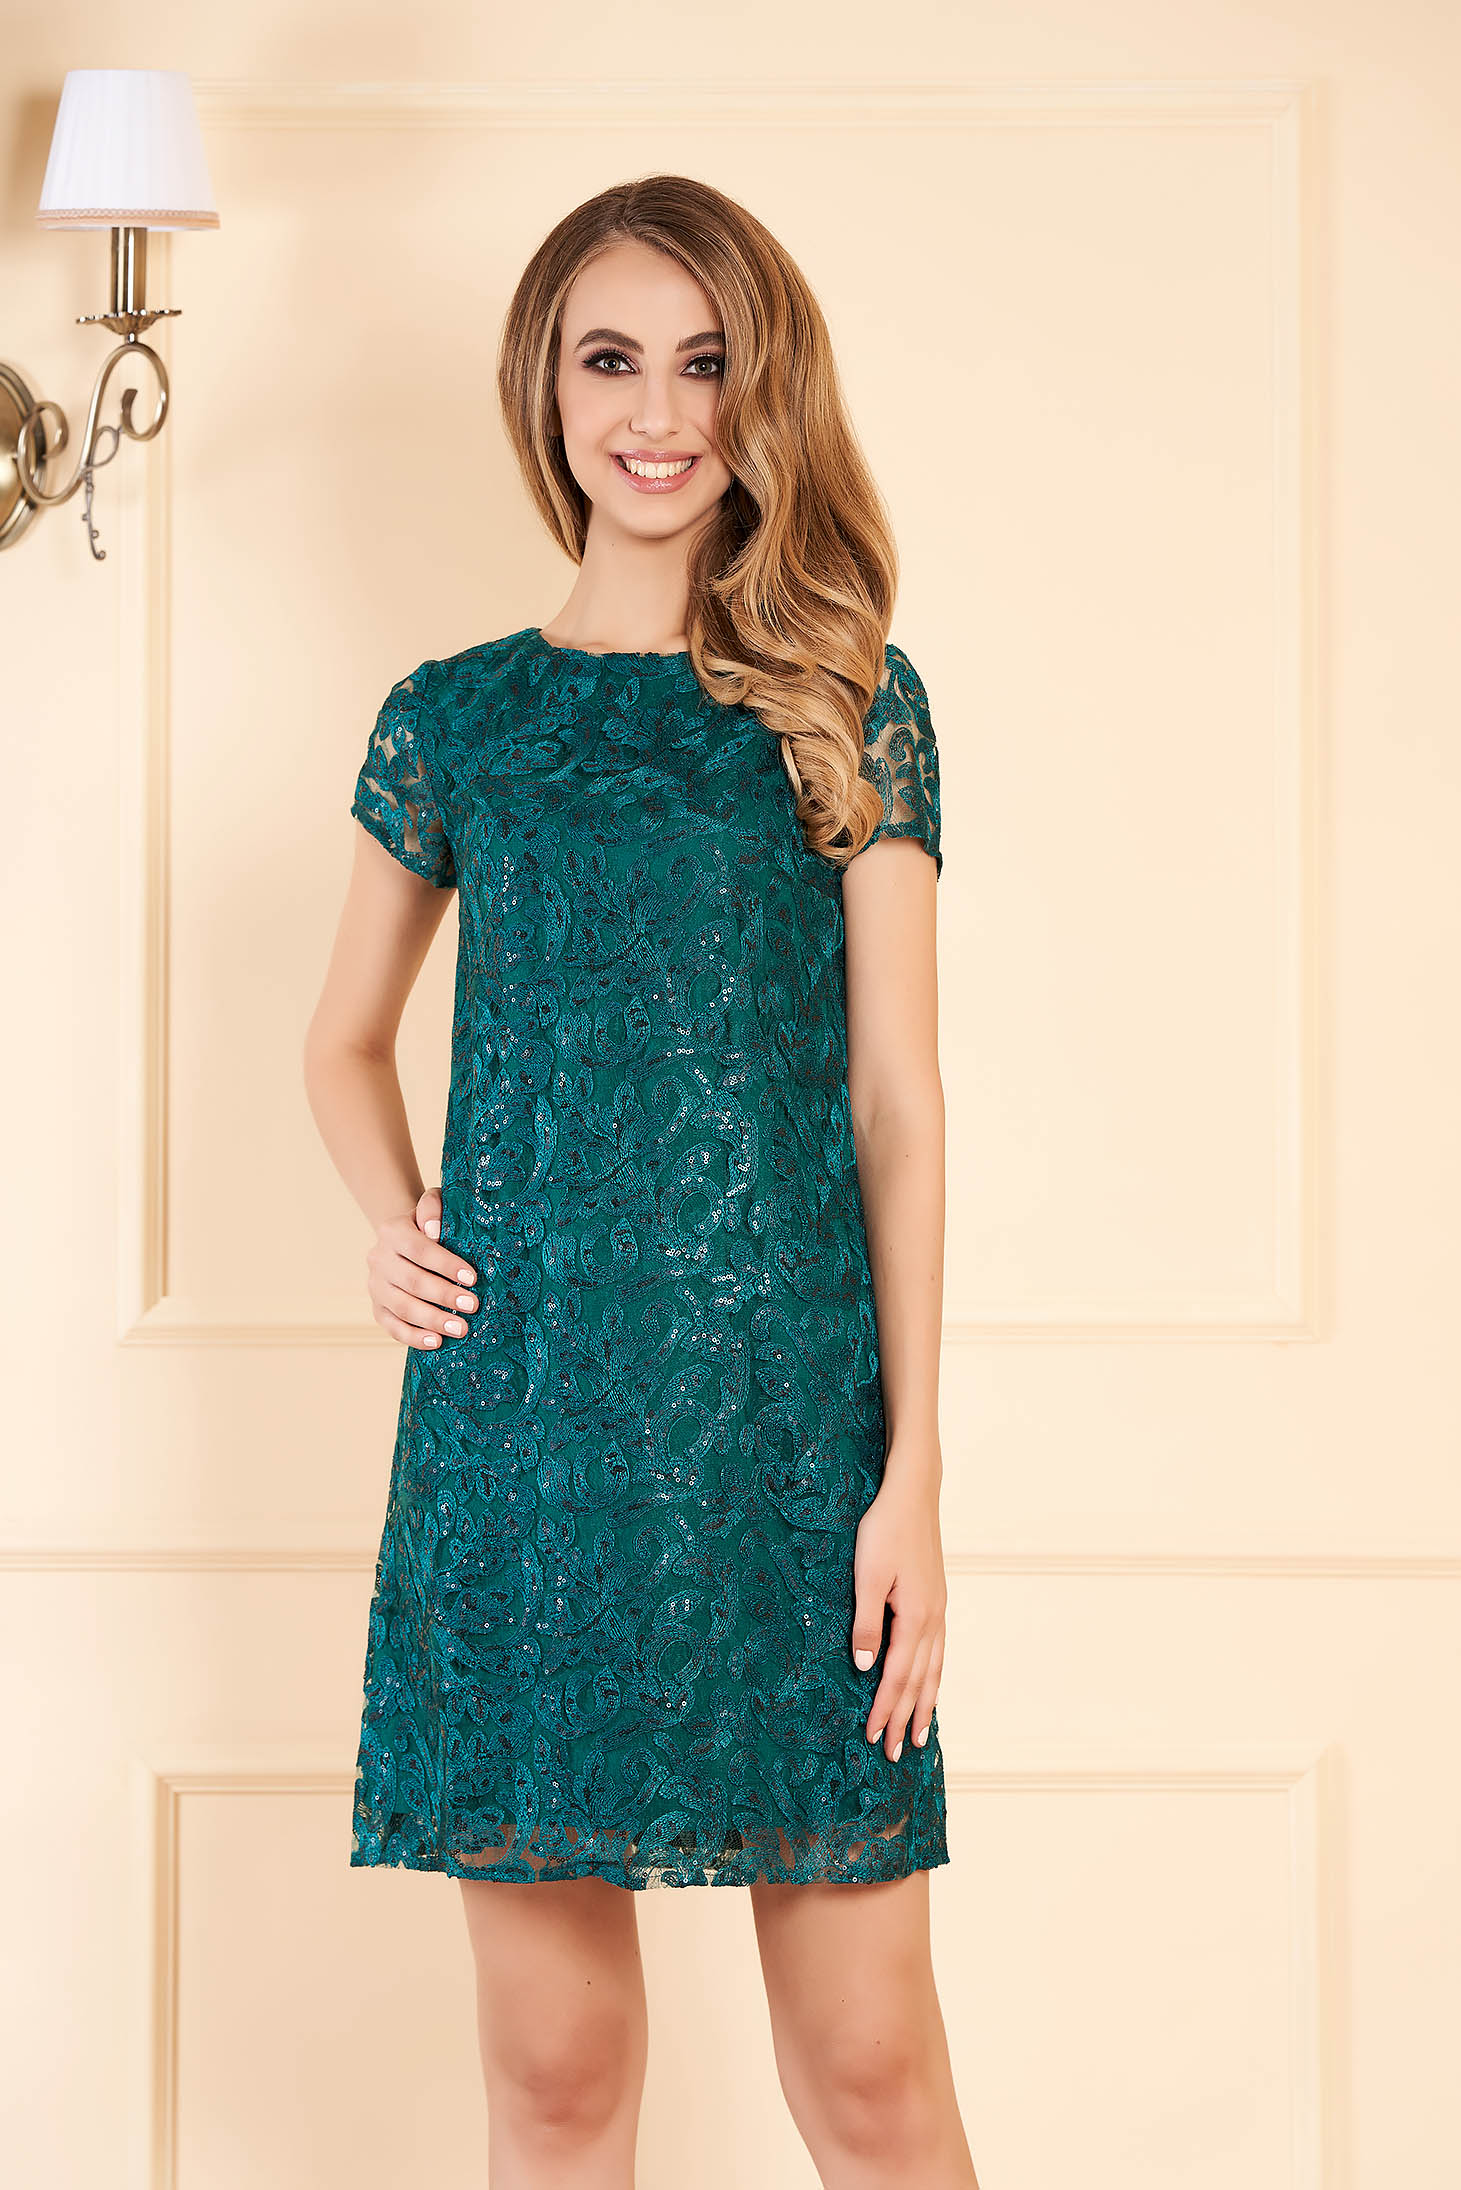 Darkgreen occasional flared dress from laced fabric with sequin embellished details with inside lining